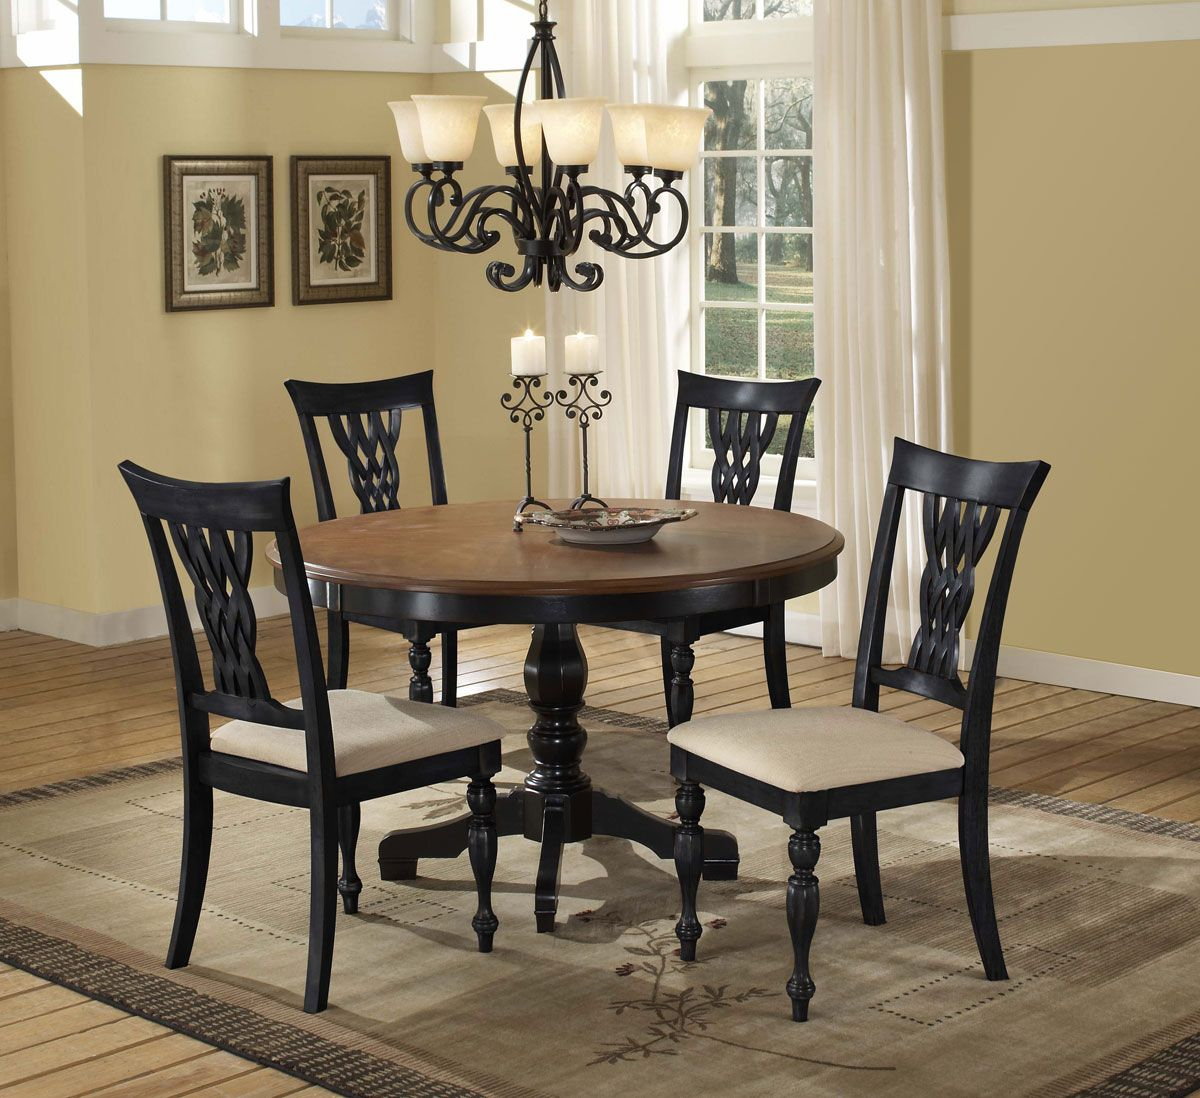 Antique Black Also White Dining Room Furniture Interior Color .